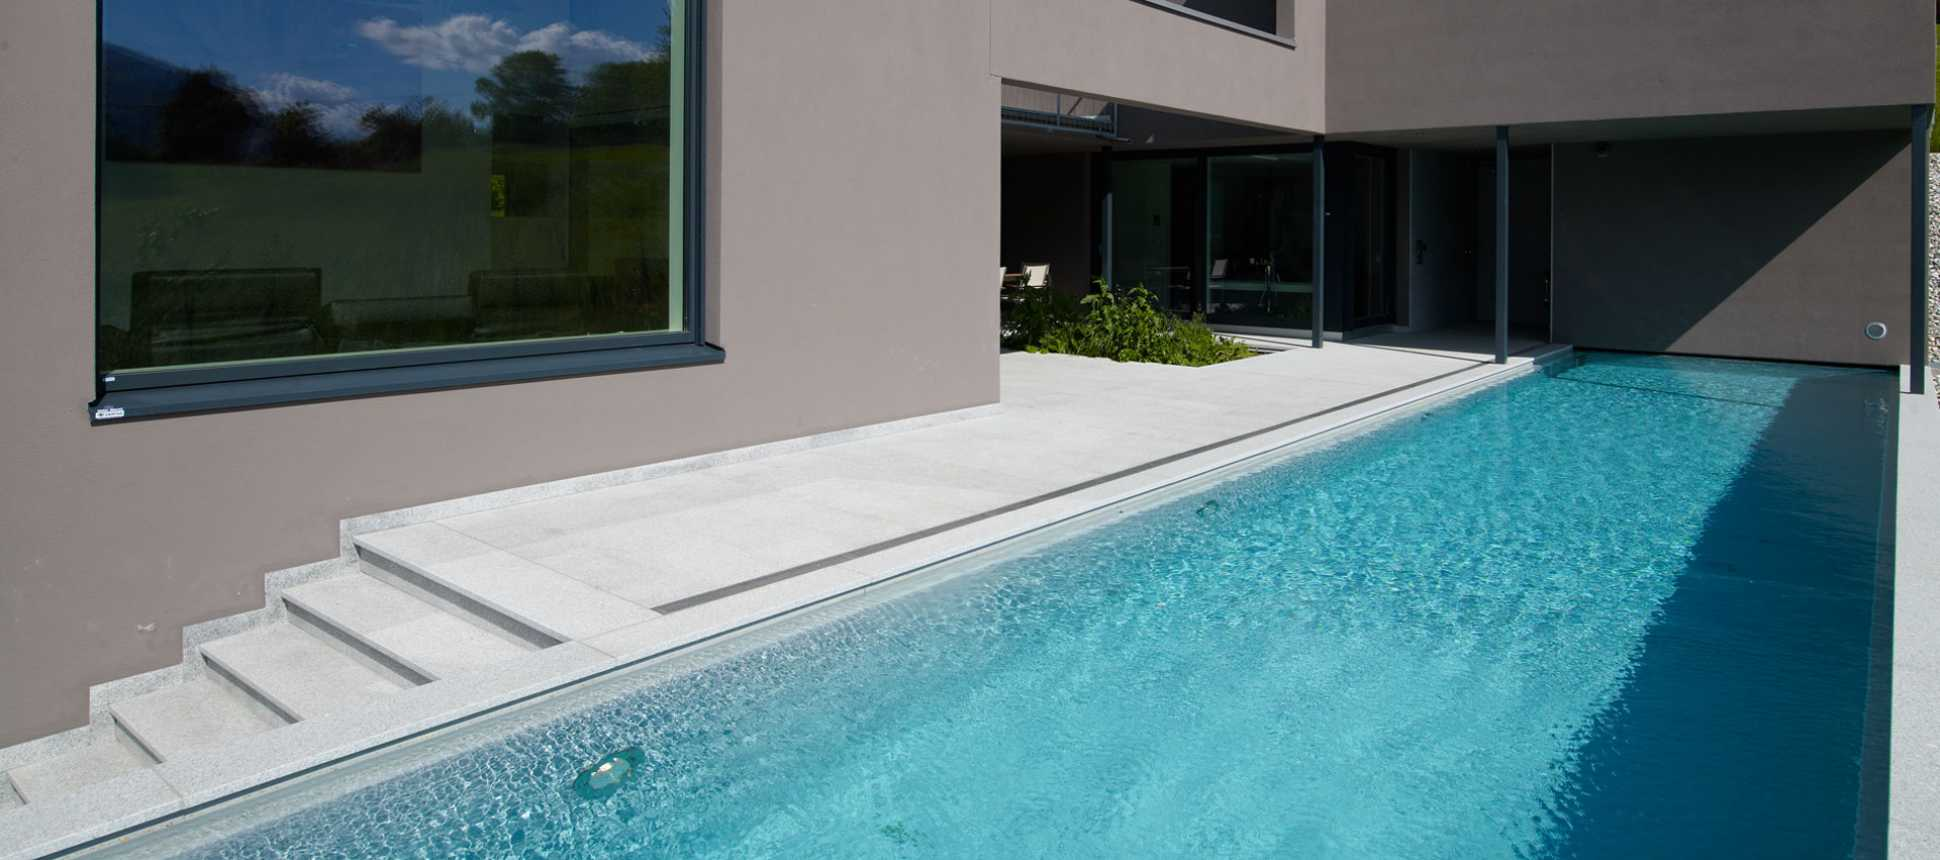 Villa mit Swimmingpool